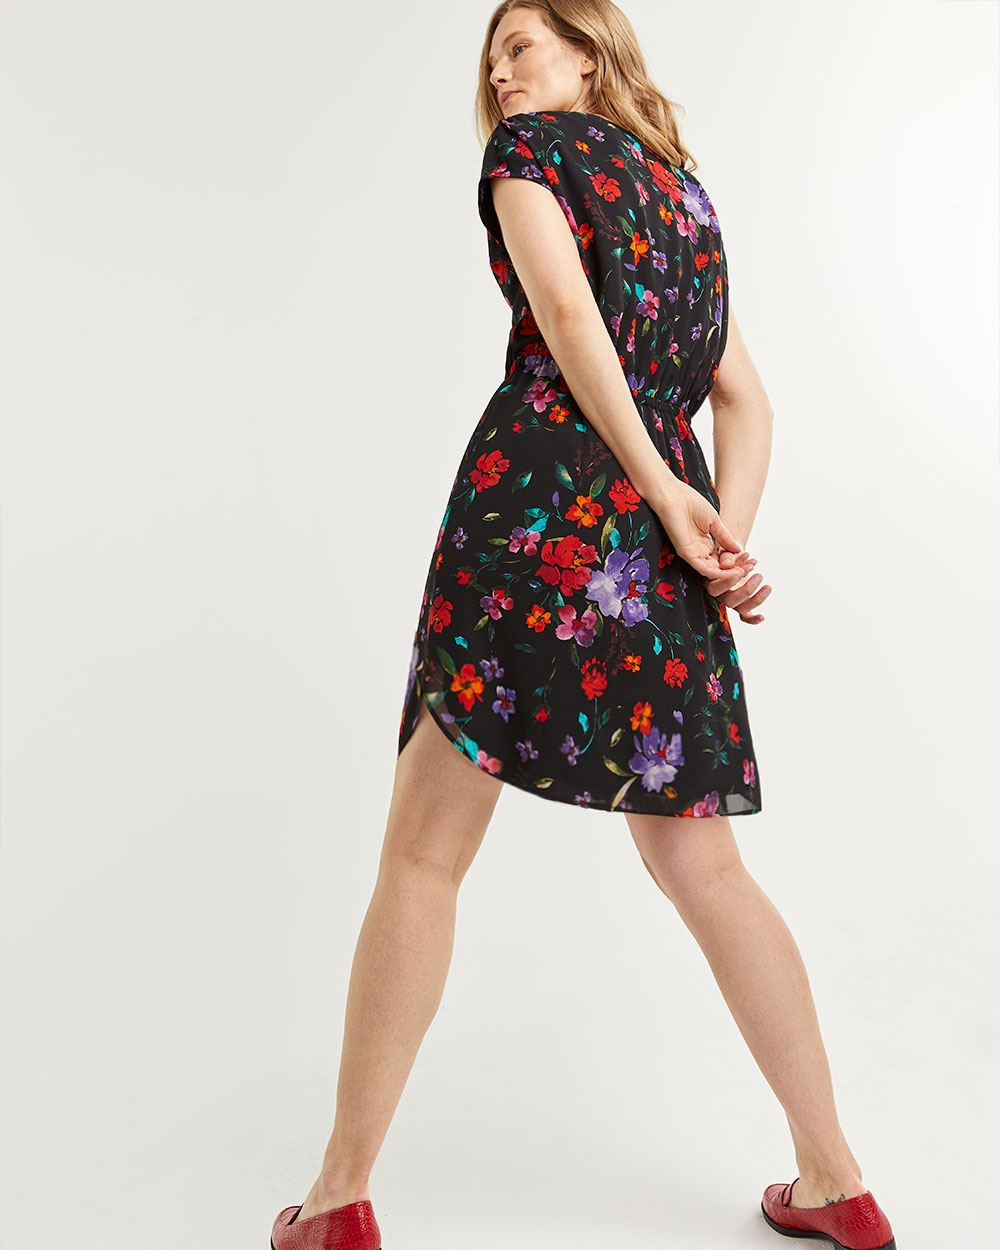 Floral Print Elastic Waist Dress with Front Keyhole